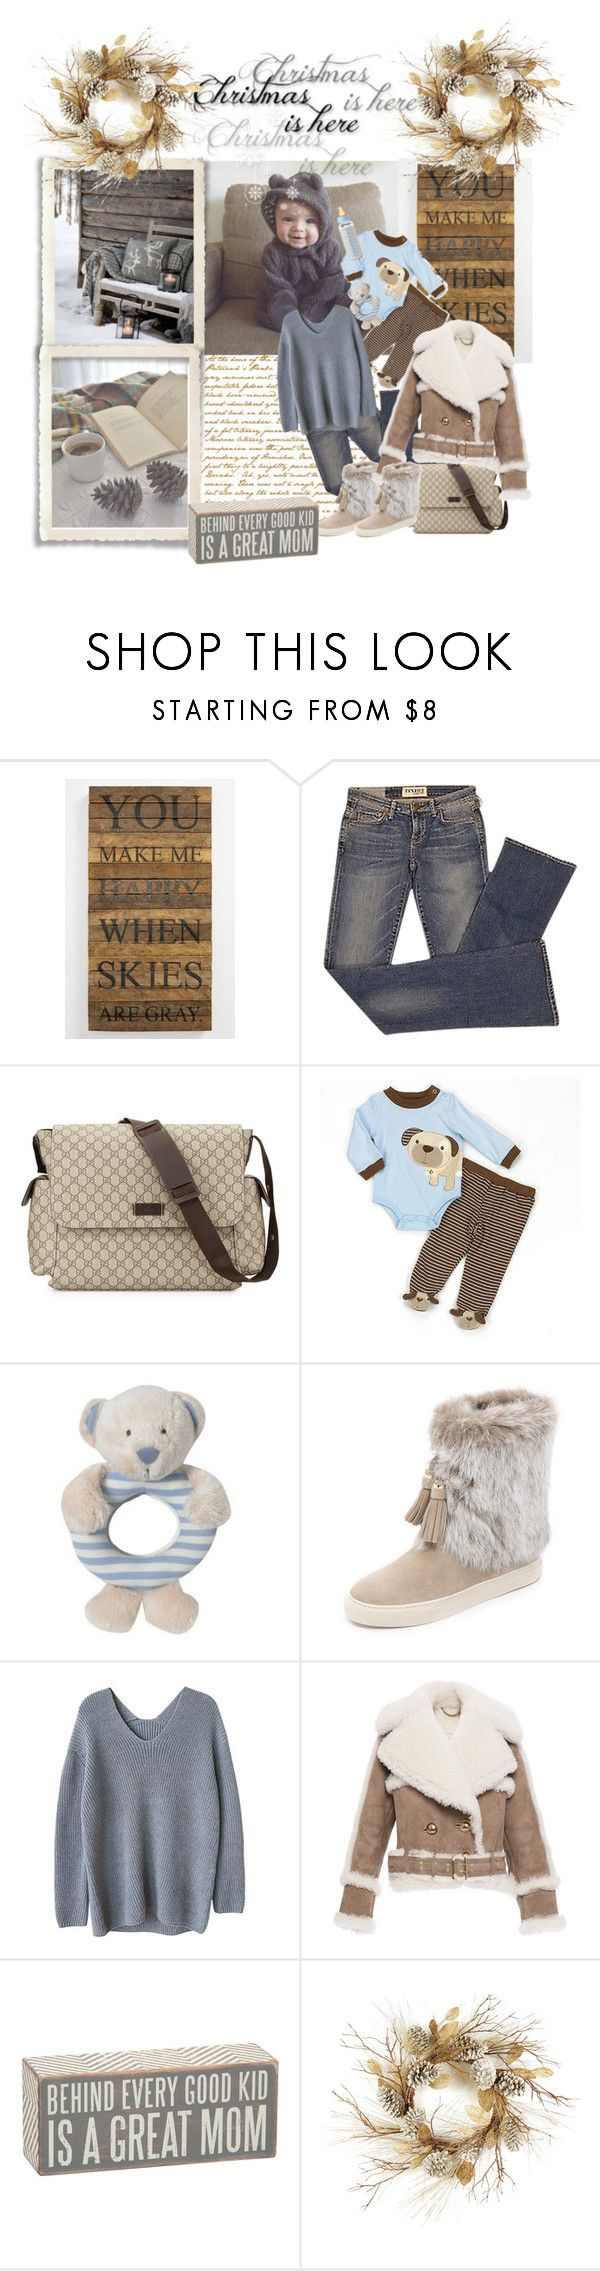 """""""Baby Christmas time !"""" by cool-cute ❤ liked on Polyvore featuring Second Nature By Hand, Elizabeth and James, Gucci, Equipment, Tory Burch, Burberry, Primitives By Kathy, Thos. Baker, Winter and Baby"""